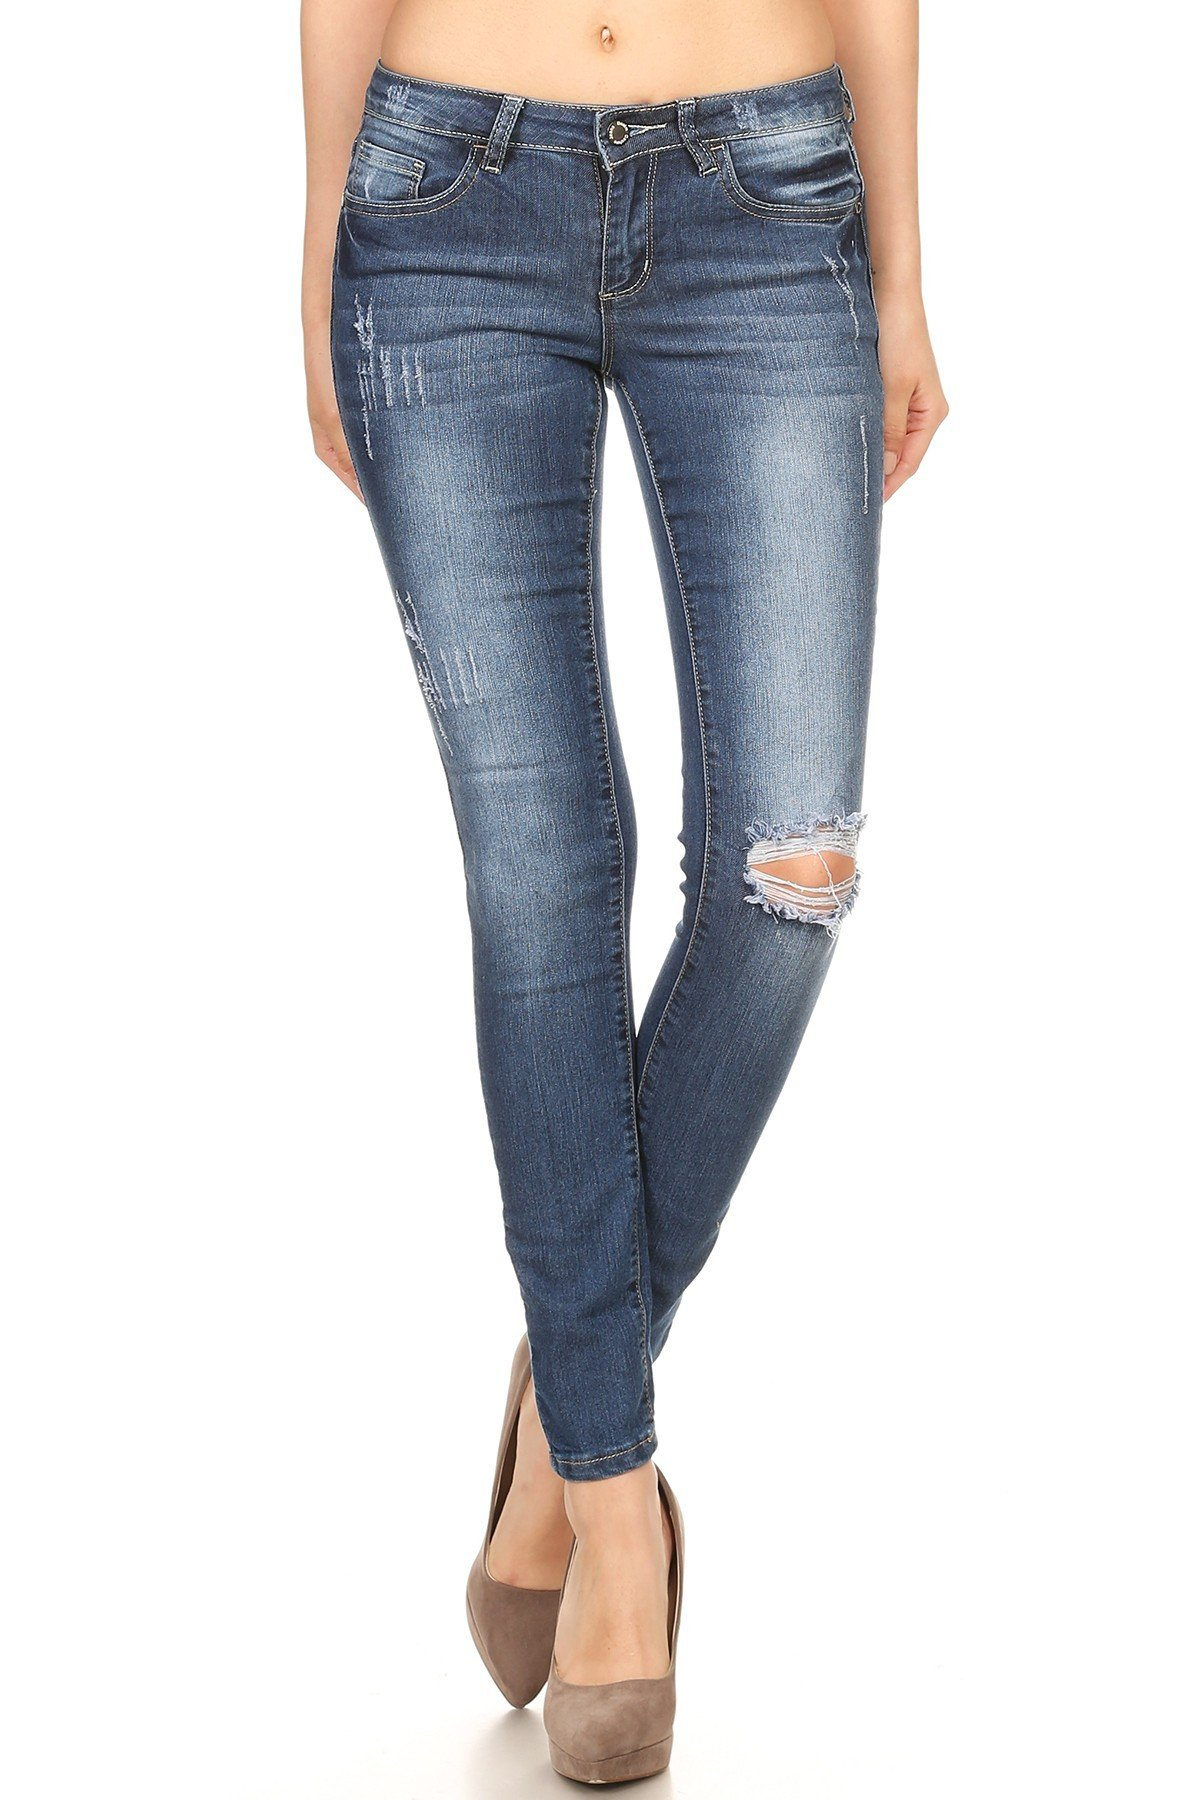 Denim Couture Destroyed Knee Jean 001122